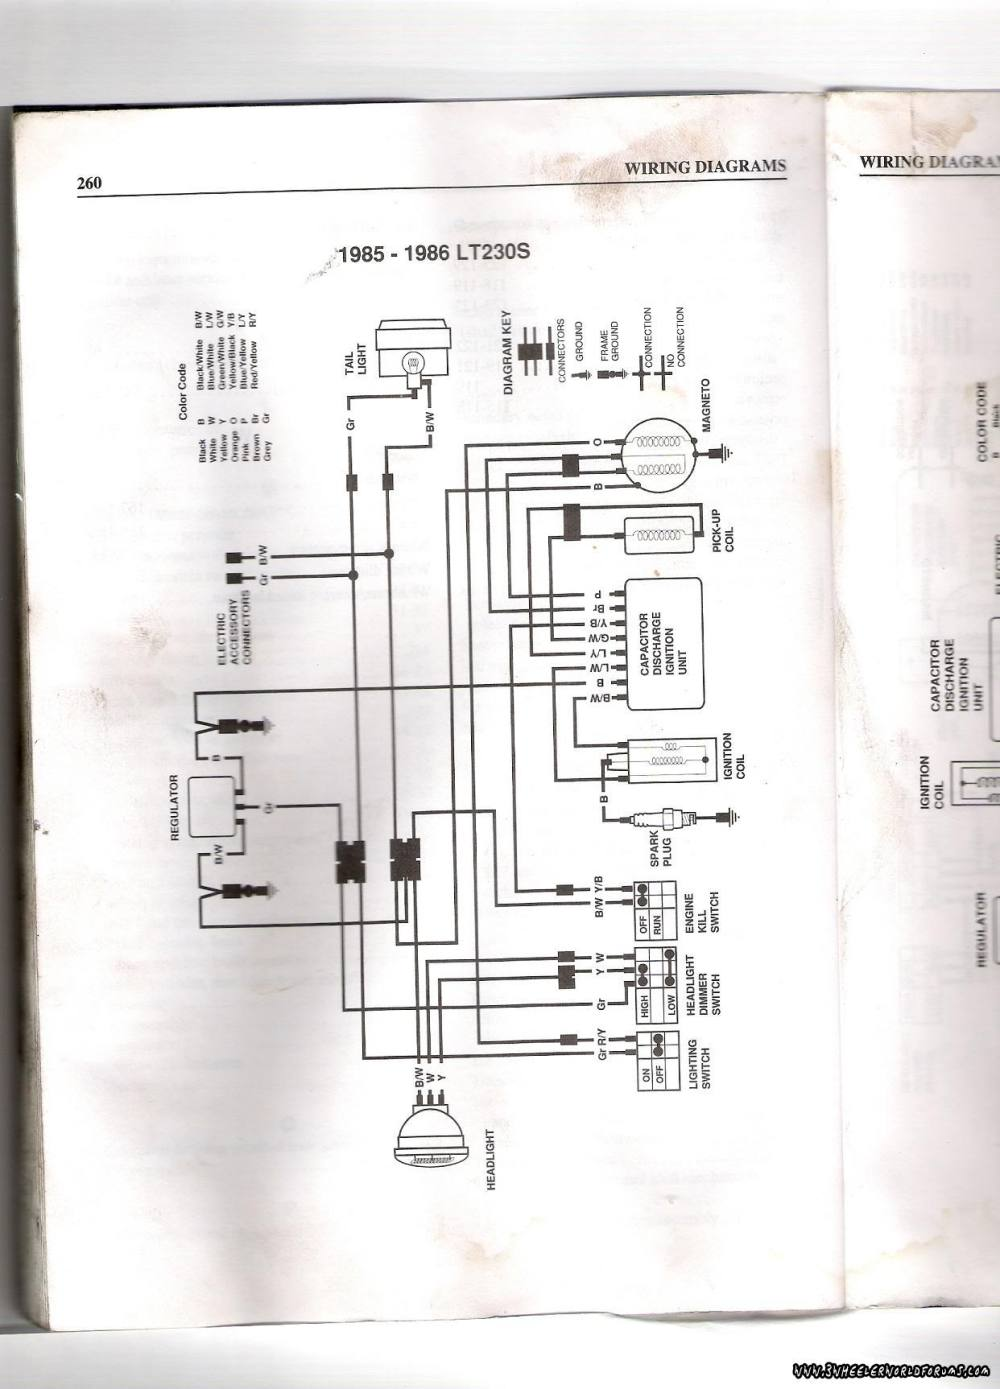 medium resolution of suzuki 300 wiring diagram wiring diagram paper 1999 suzuki king quad 300 wiring diagram suzuki lt